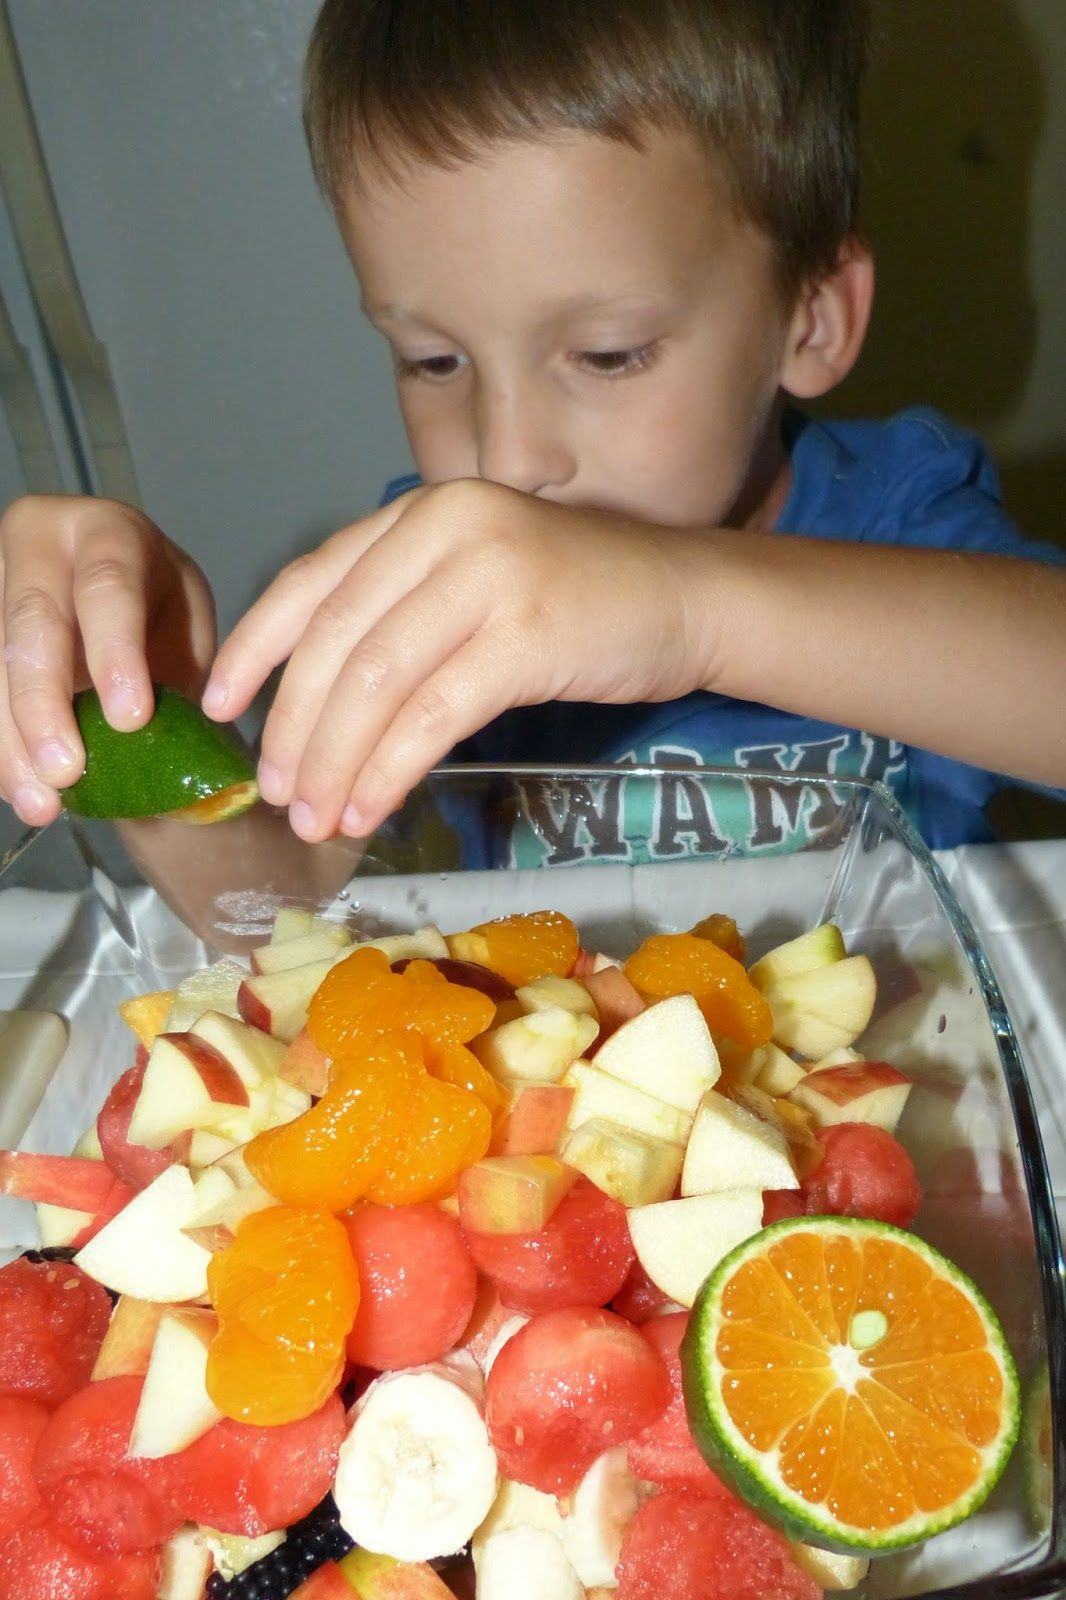 Friendship fruit salad healthy mind and body healthy